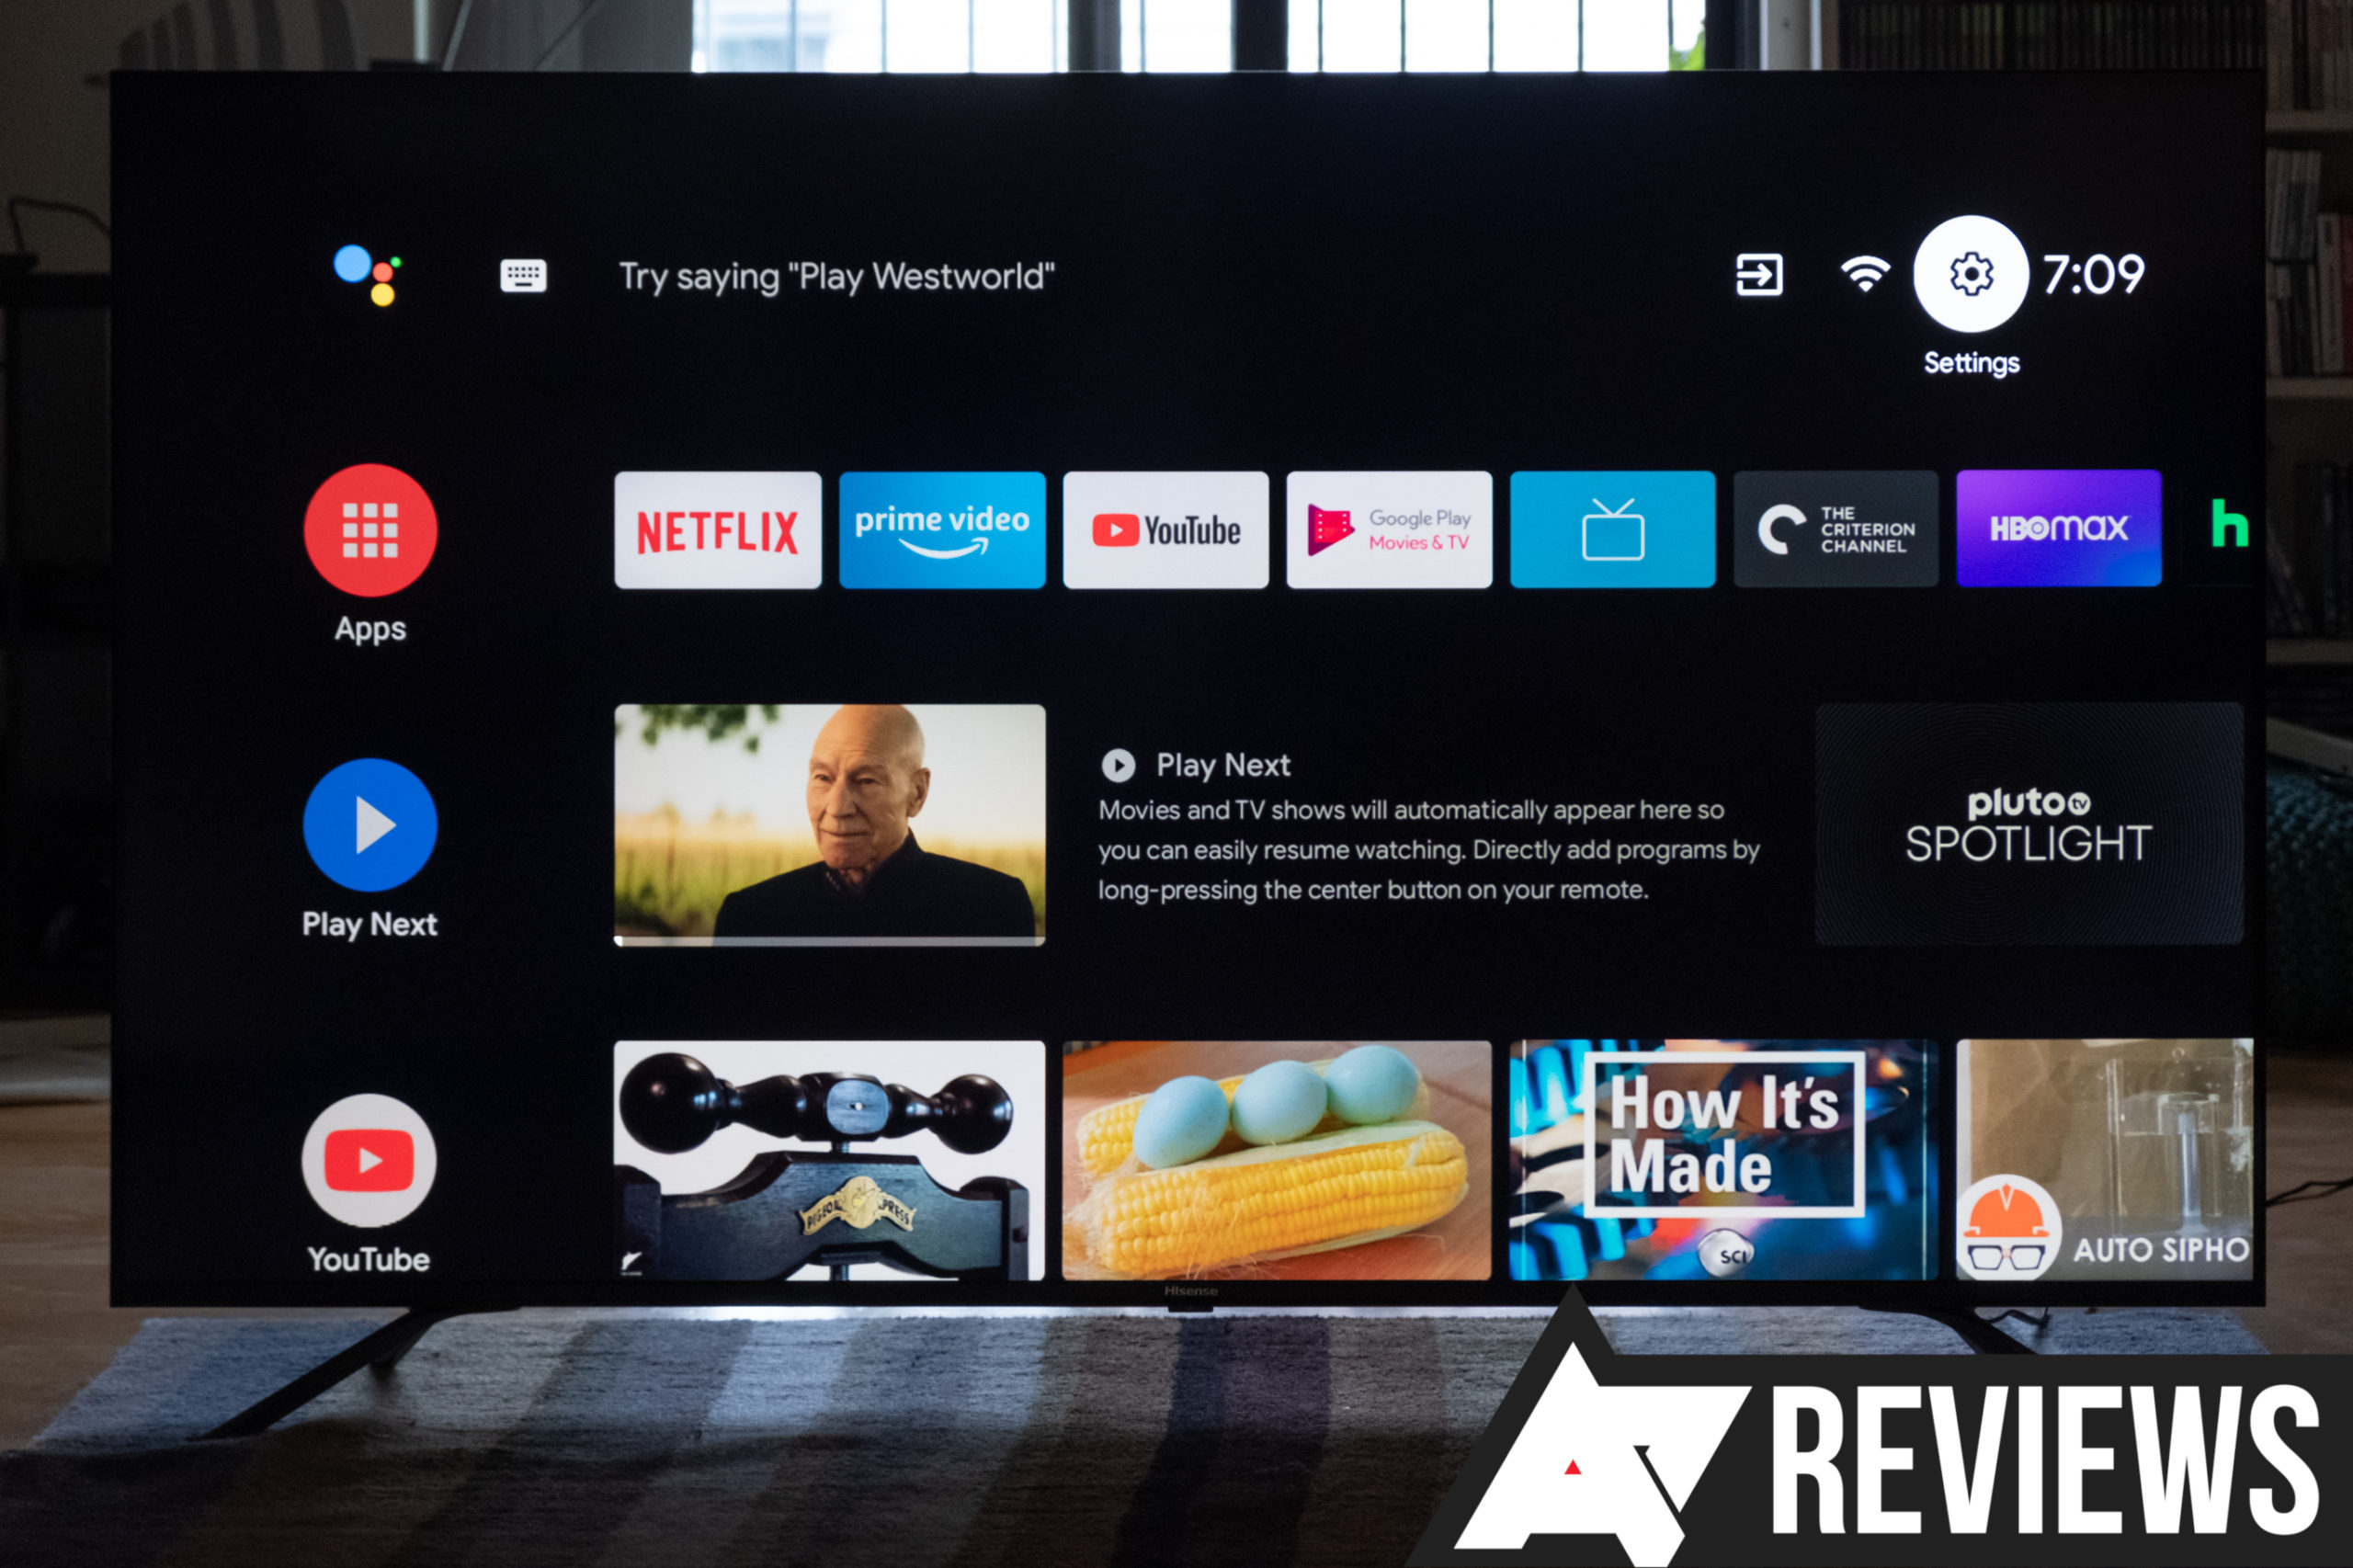 Hisense H8g Quantum Android Tv Review A Very Good Smart Tv That S Very Hard To Recommend